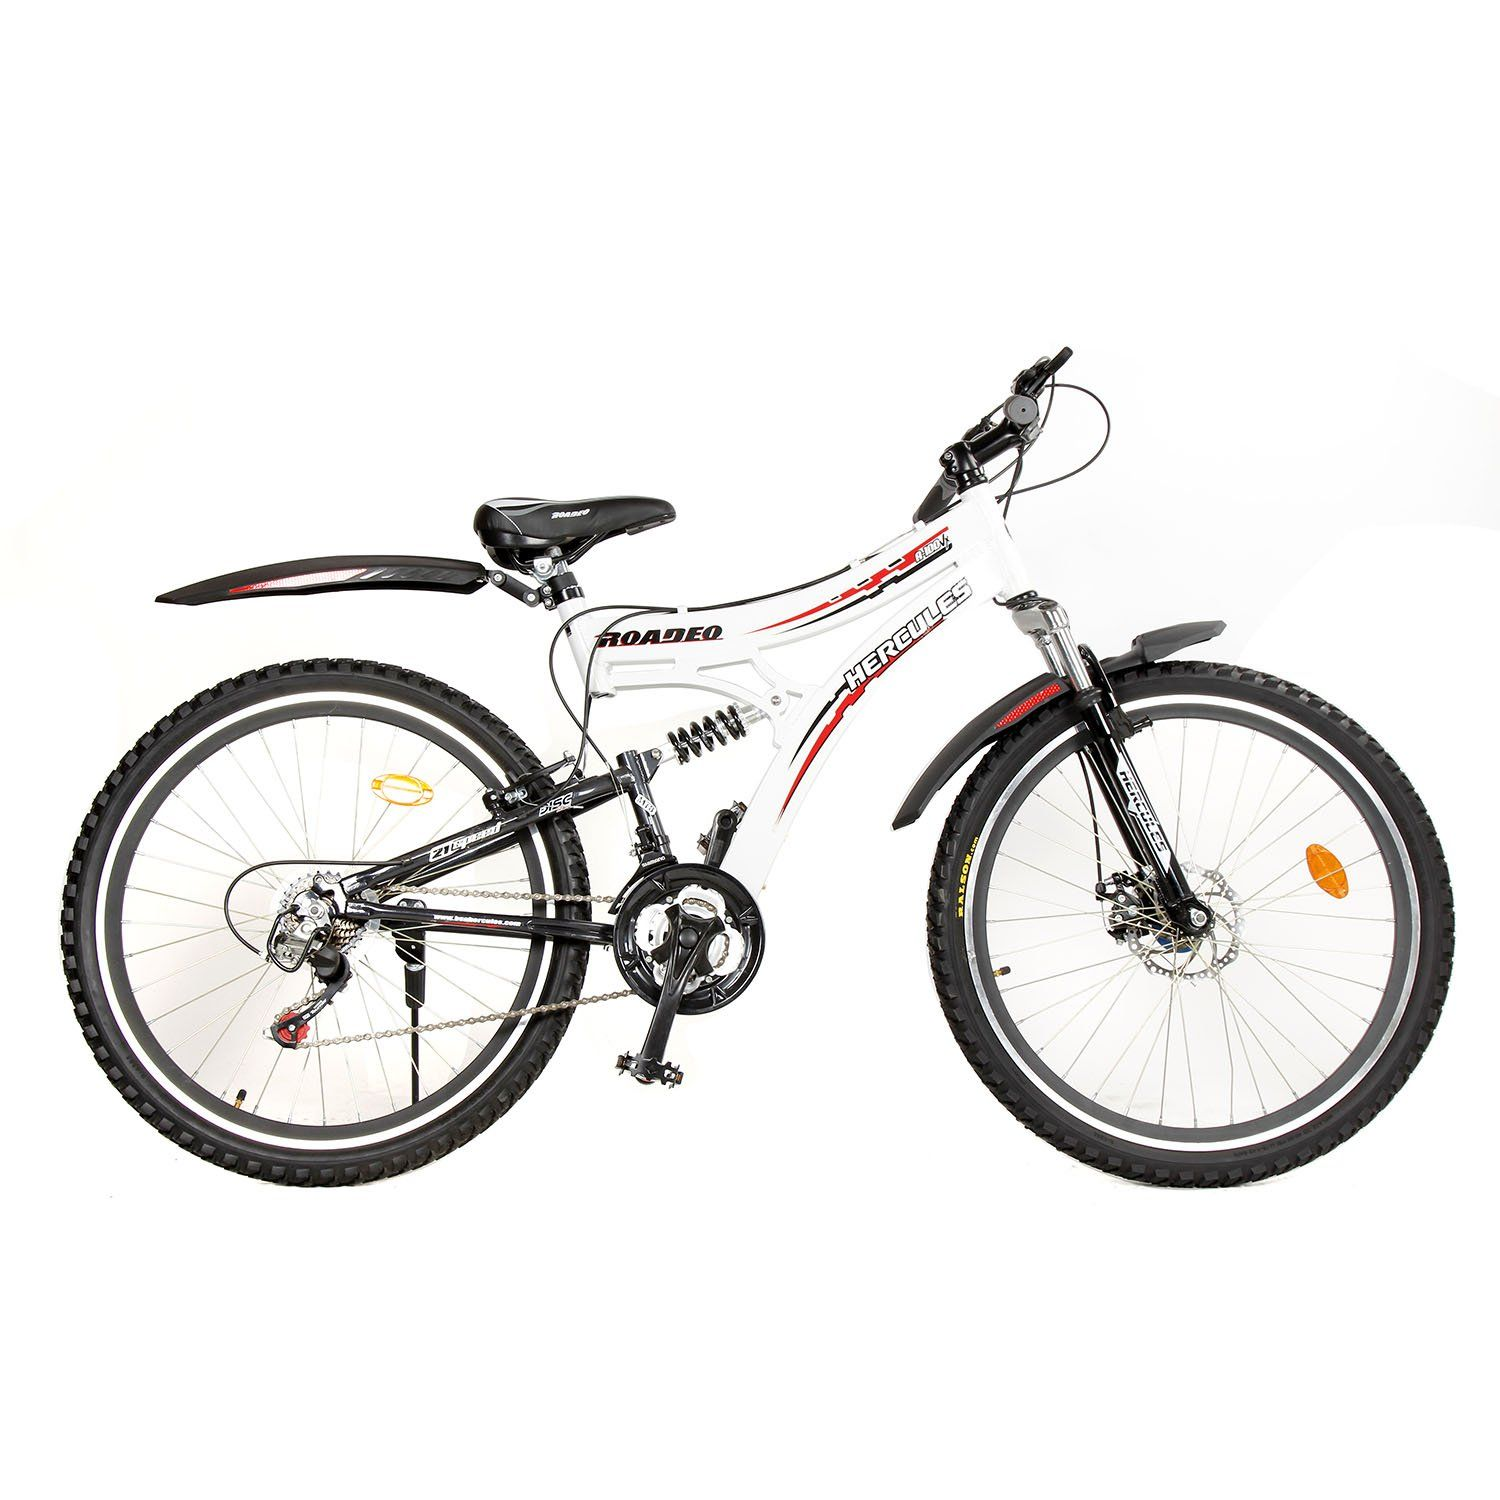 Hercules Roadeo A 100 Vx 21 Speed Bicycle Speed Bicycle